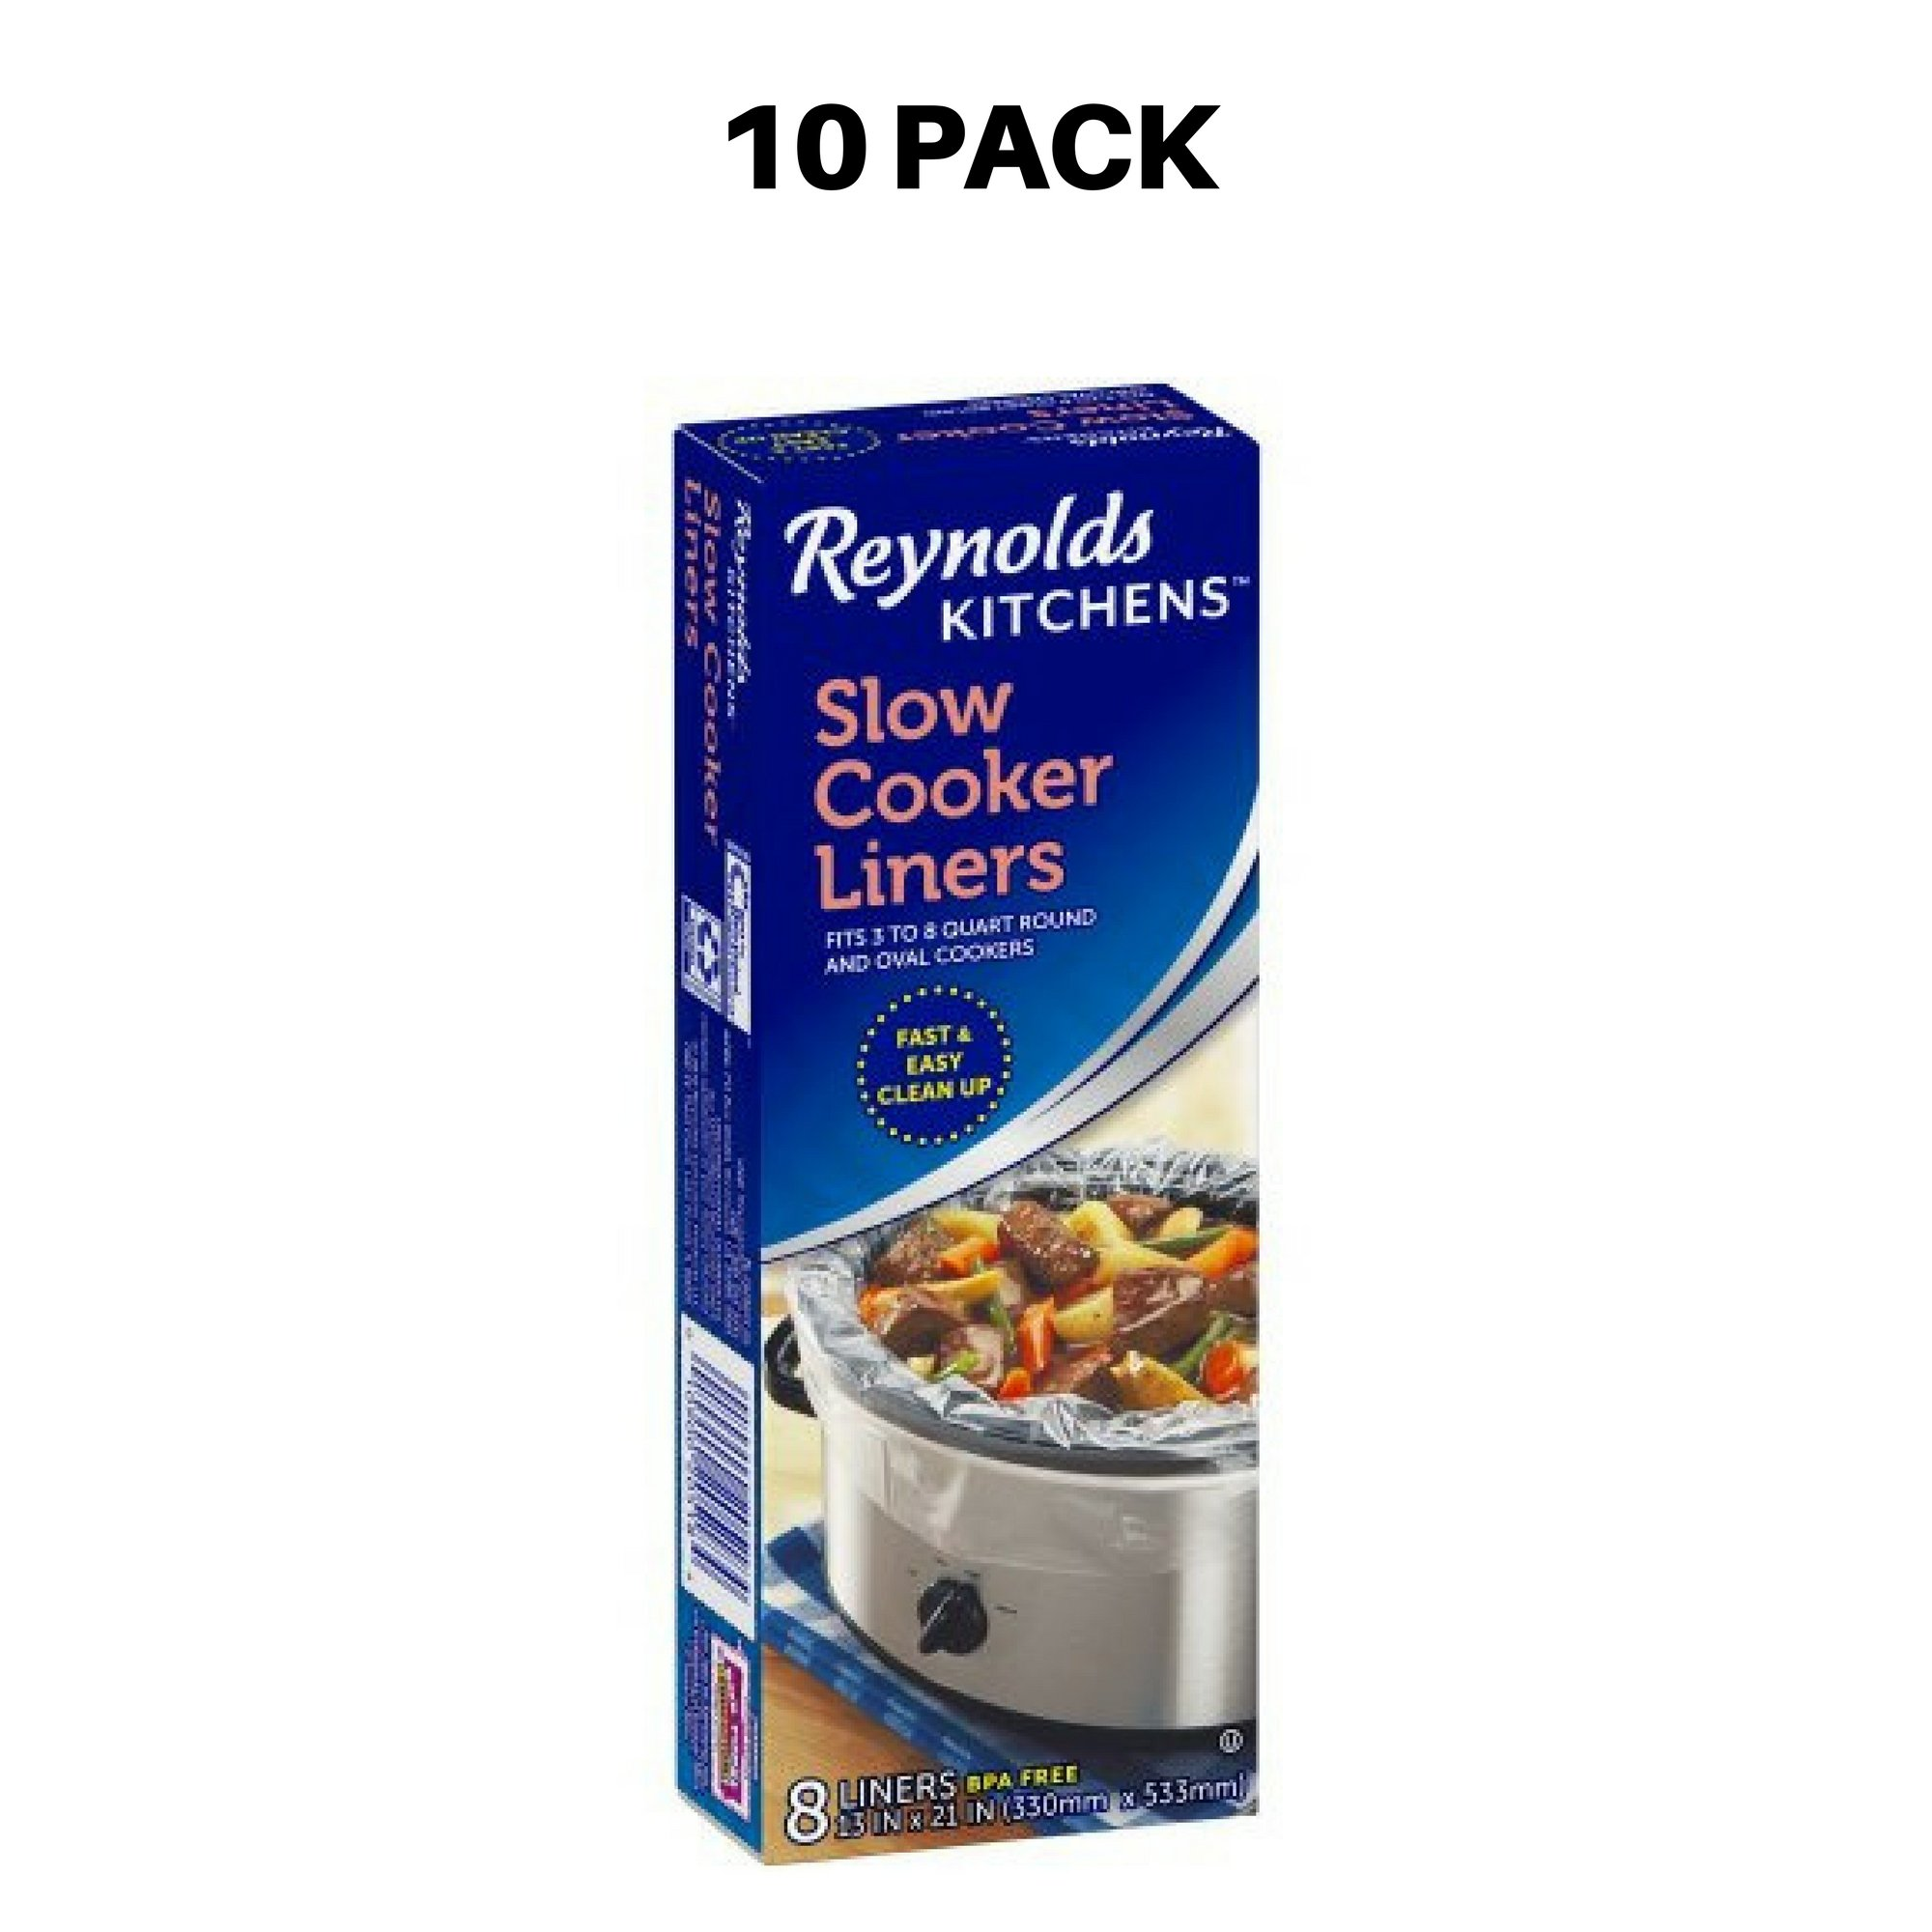 Reynolds Kitchens Slow Cooker Liners 8 ct Box - 10 Pack